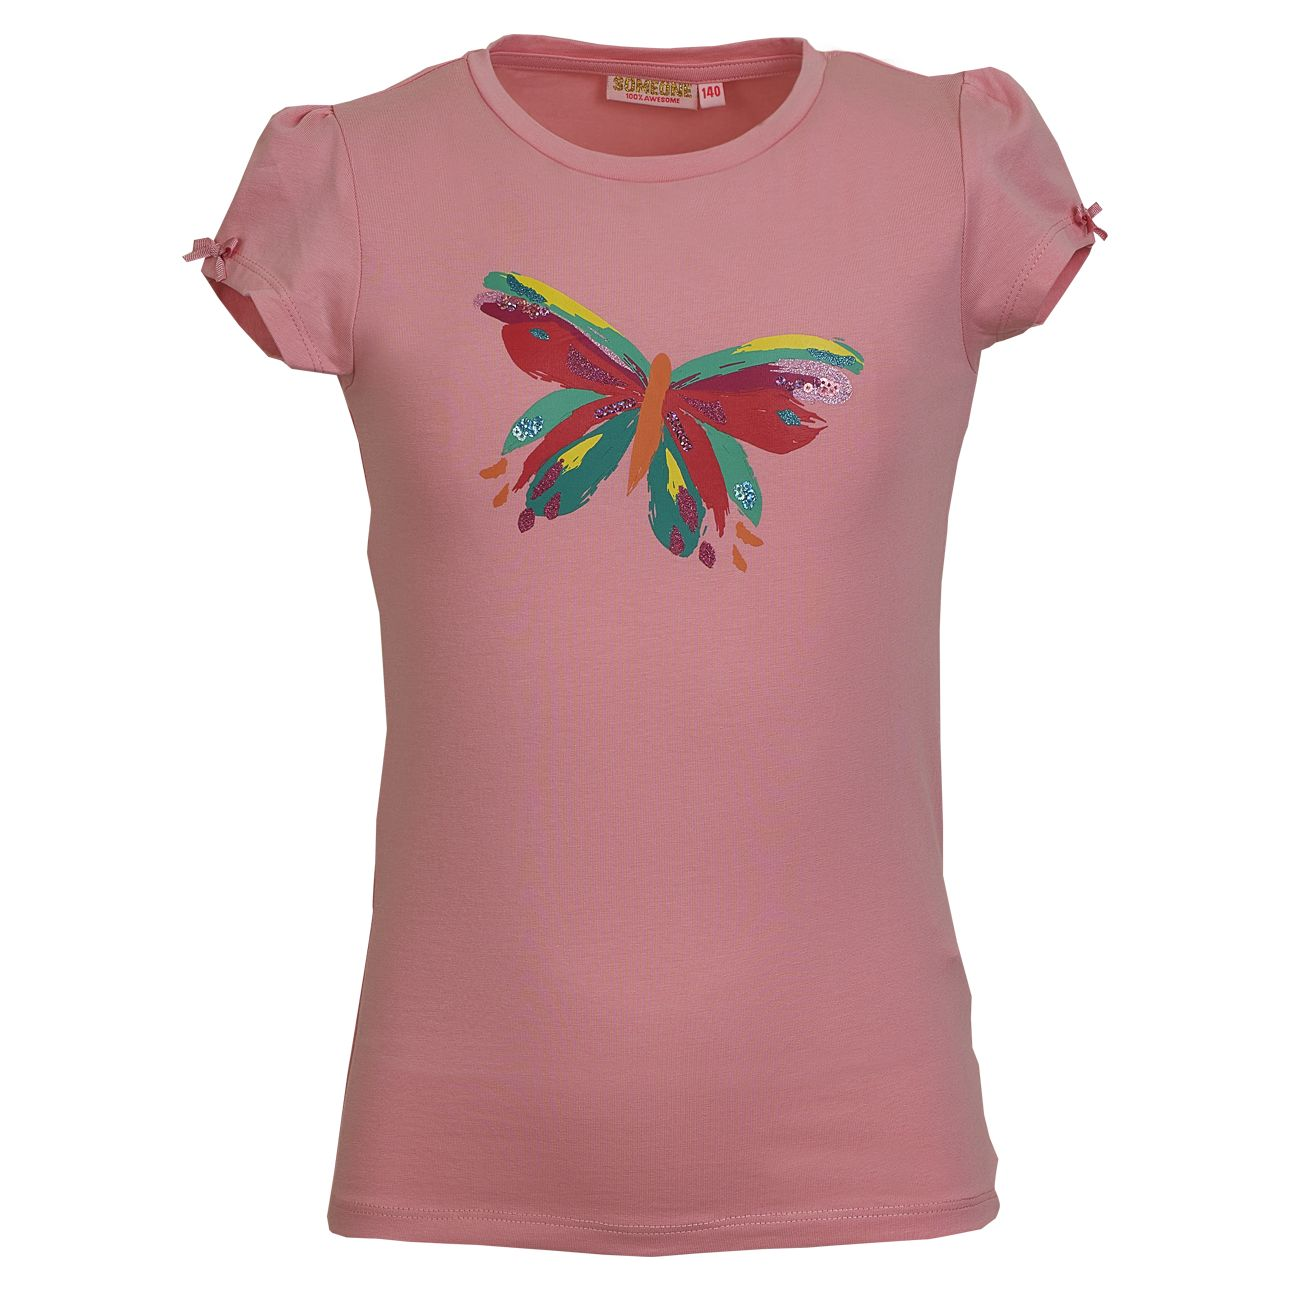 T-Shirt Butterfly 098 Pink SOMEONE 100% Awesome